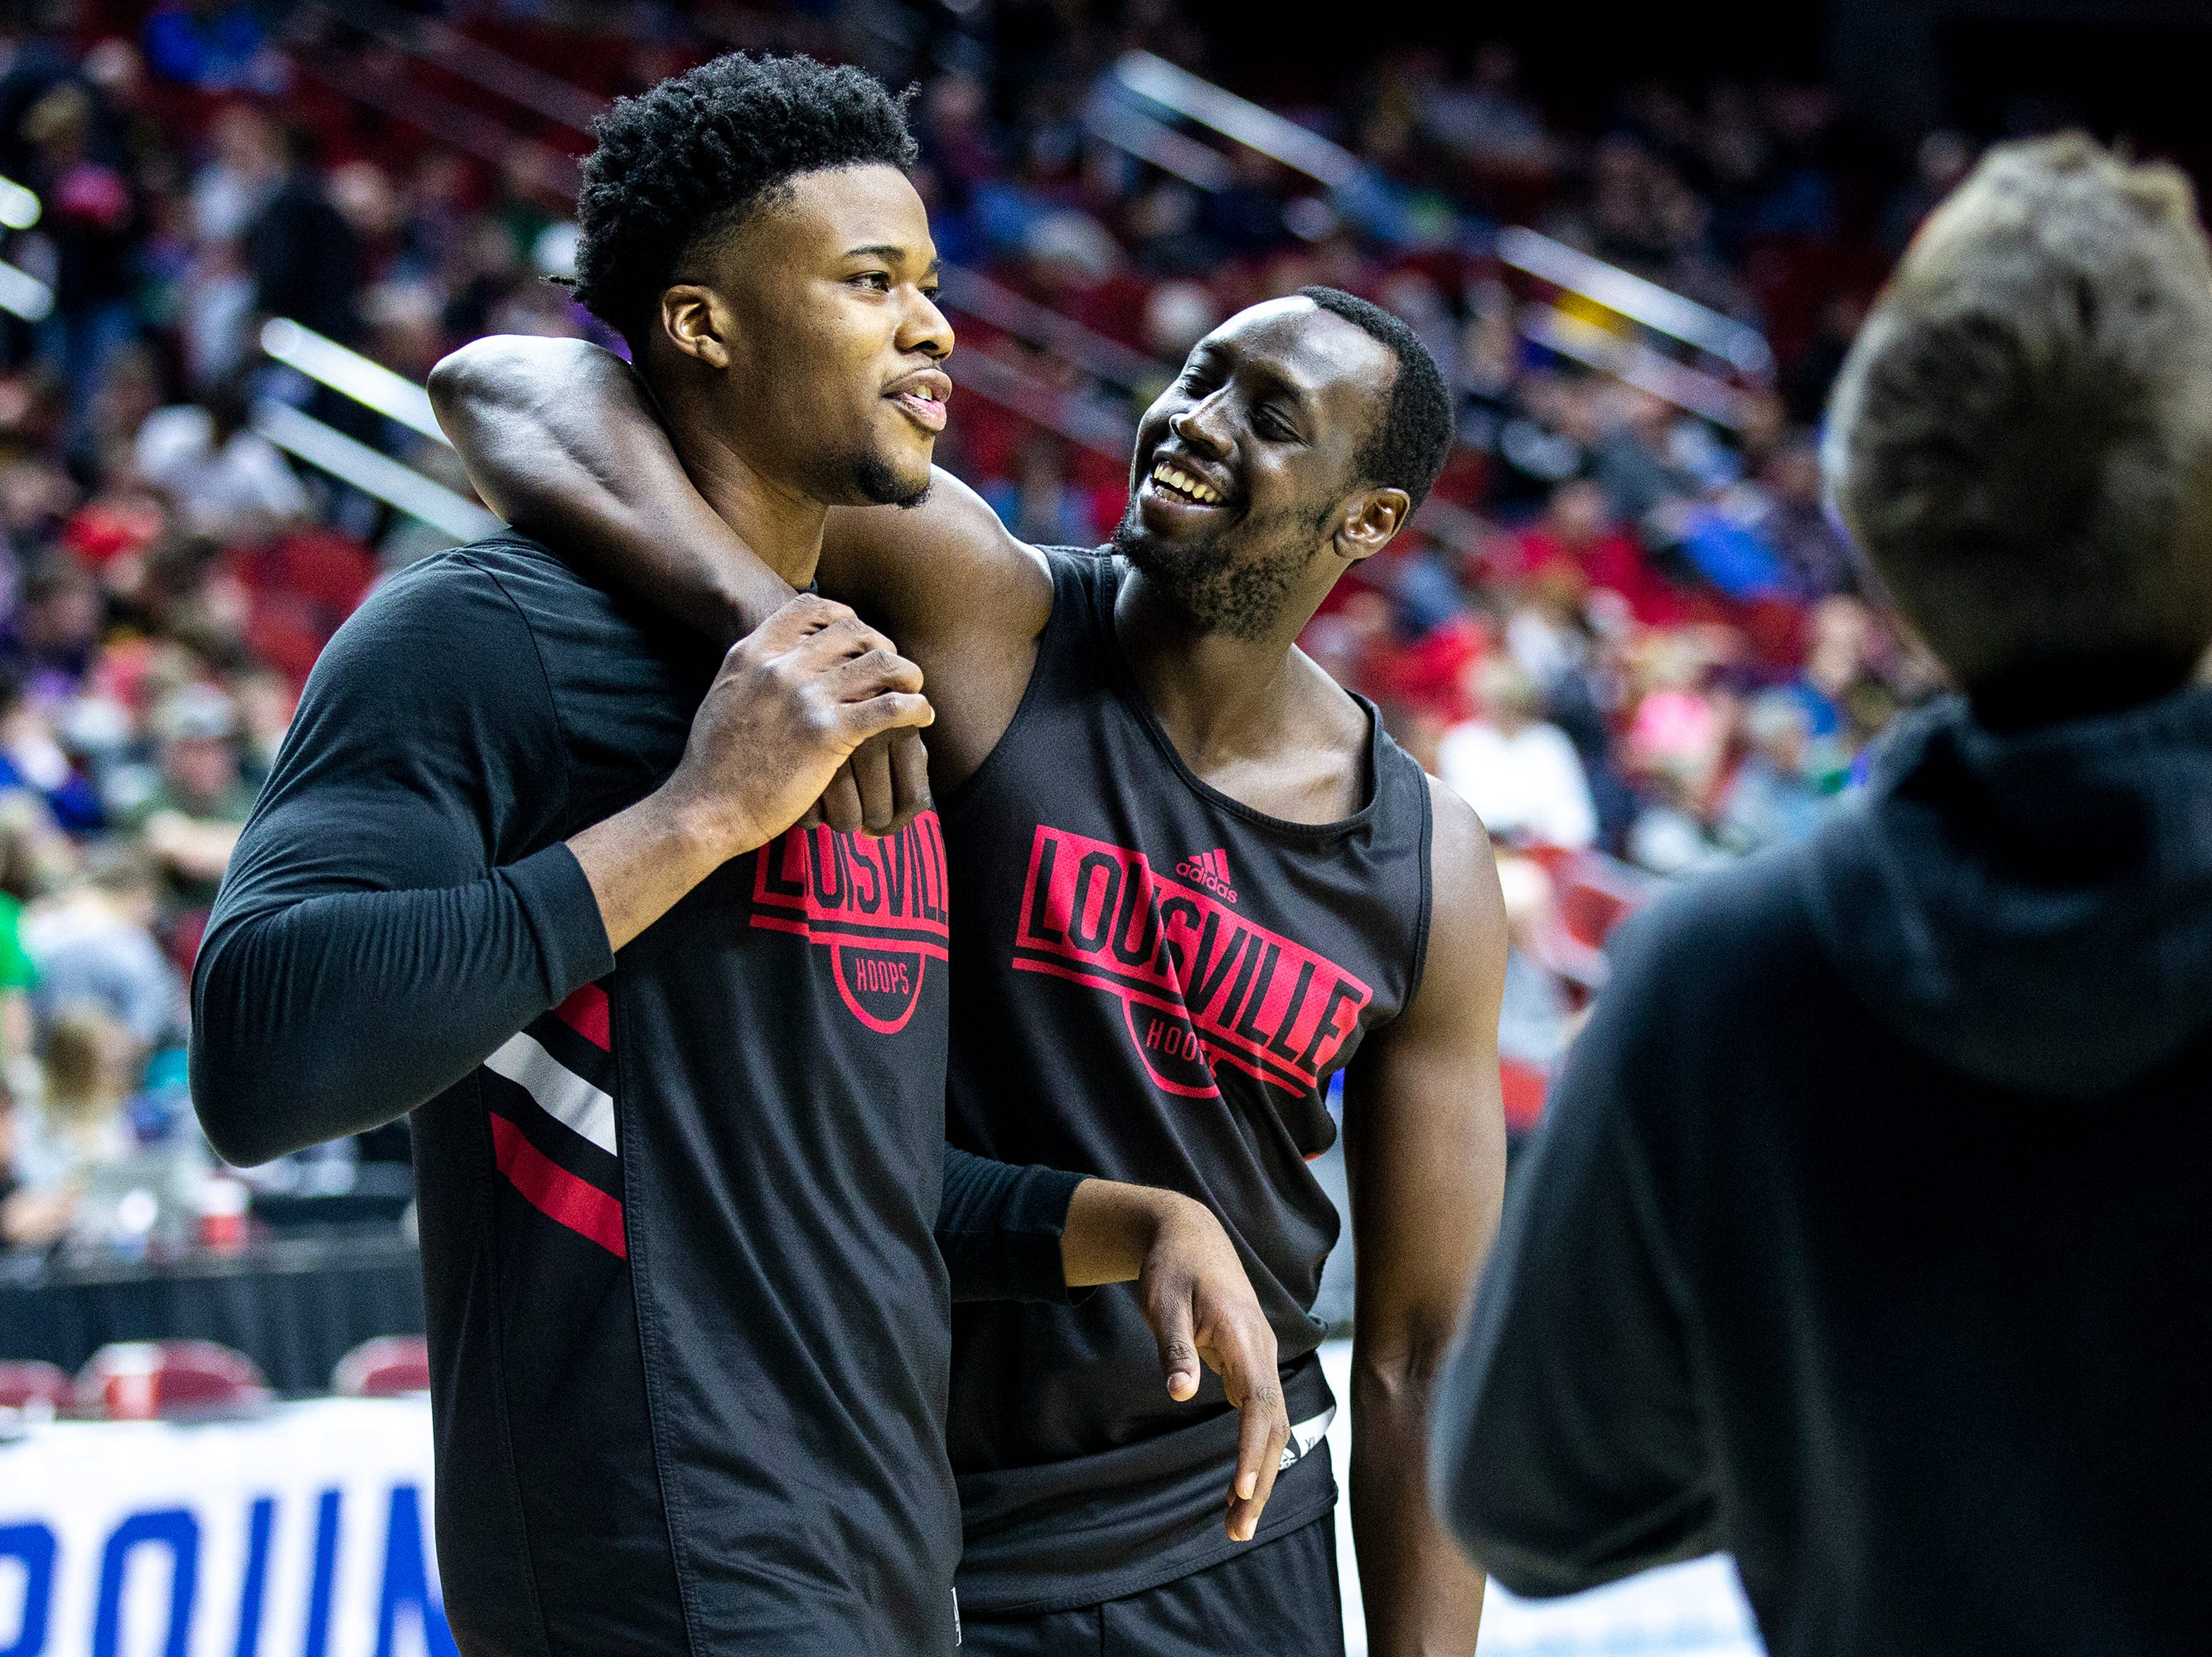 Louisville's Akoy Agau and Steven Enoch laugh between practice drills during Louisville's open practice before the first round of the NCAA Men's Basketball Tournament on Wednesday, March 20, 2019, at Wells Fargo Arena in Des Moines, Iowa.